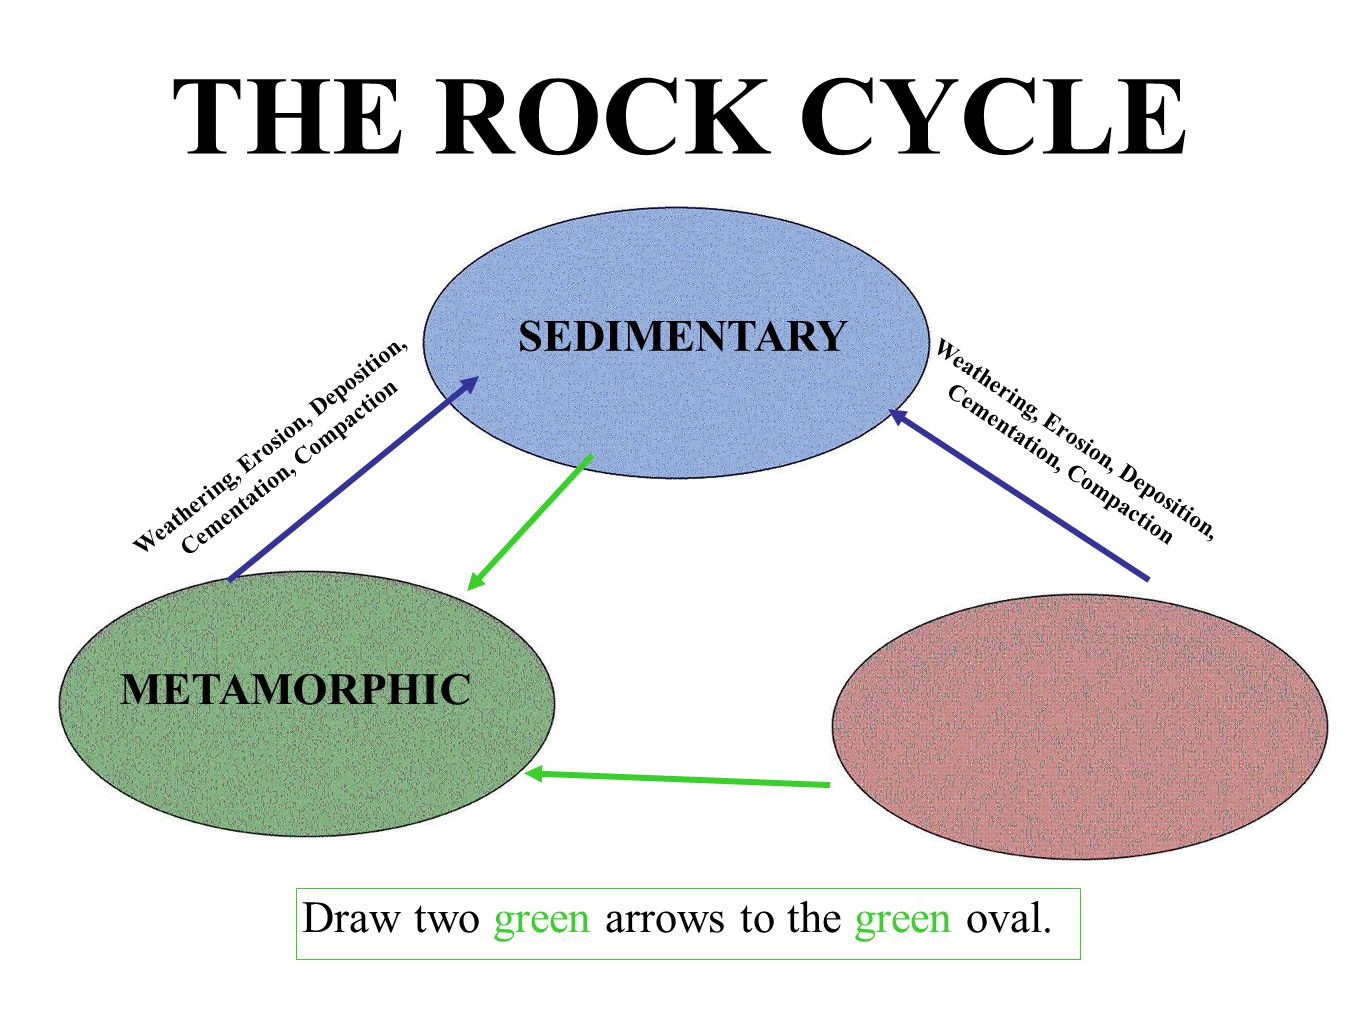 SEDIMENTARY Weathering, Erosion, Deposition, Cementation, Compaction Weathering, Erosion, Deposition, Cementation, Compaction THE ROCK CYCLE METAMORPH